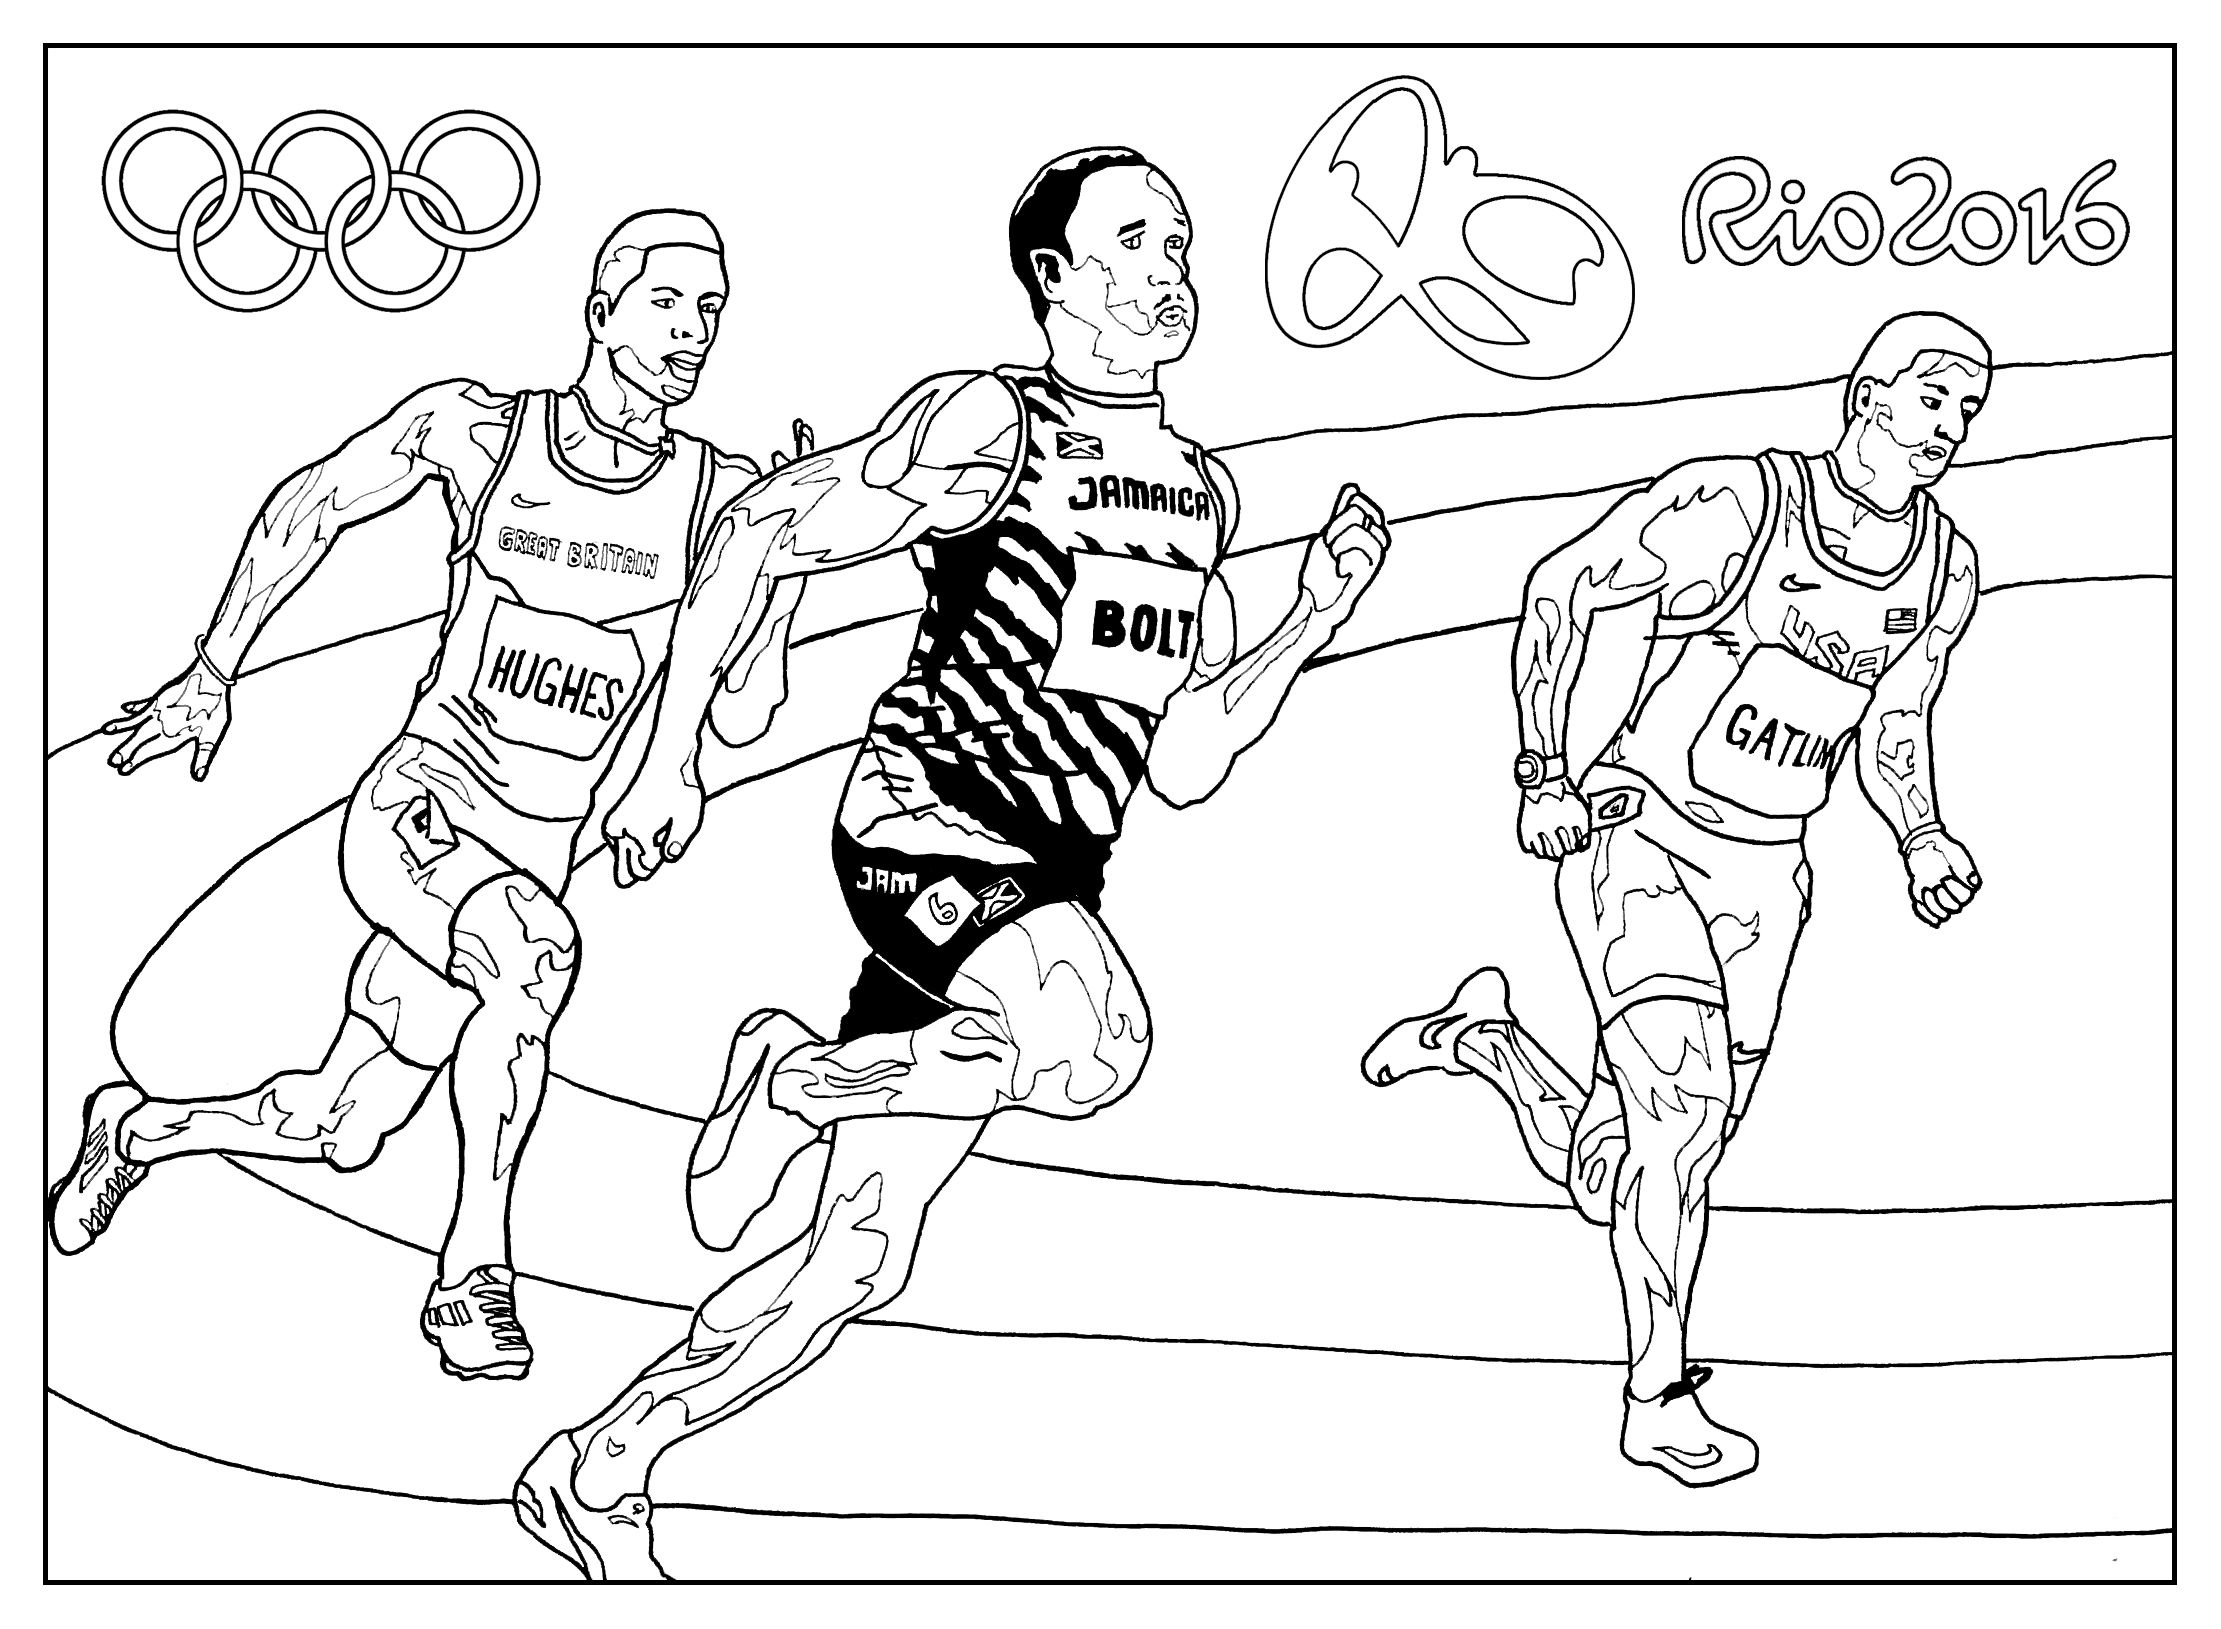 Coloring Pages Page Coloring free coloring page adult rio 2016 olympic games athletism athletism